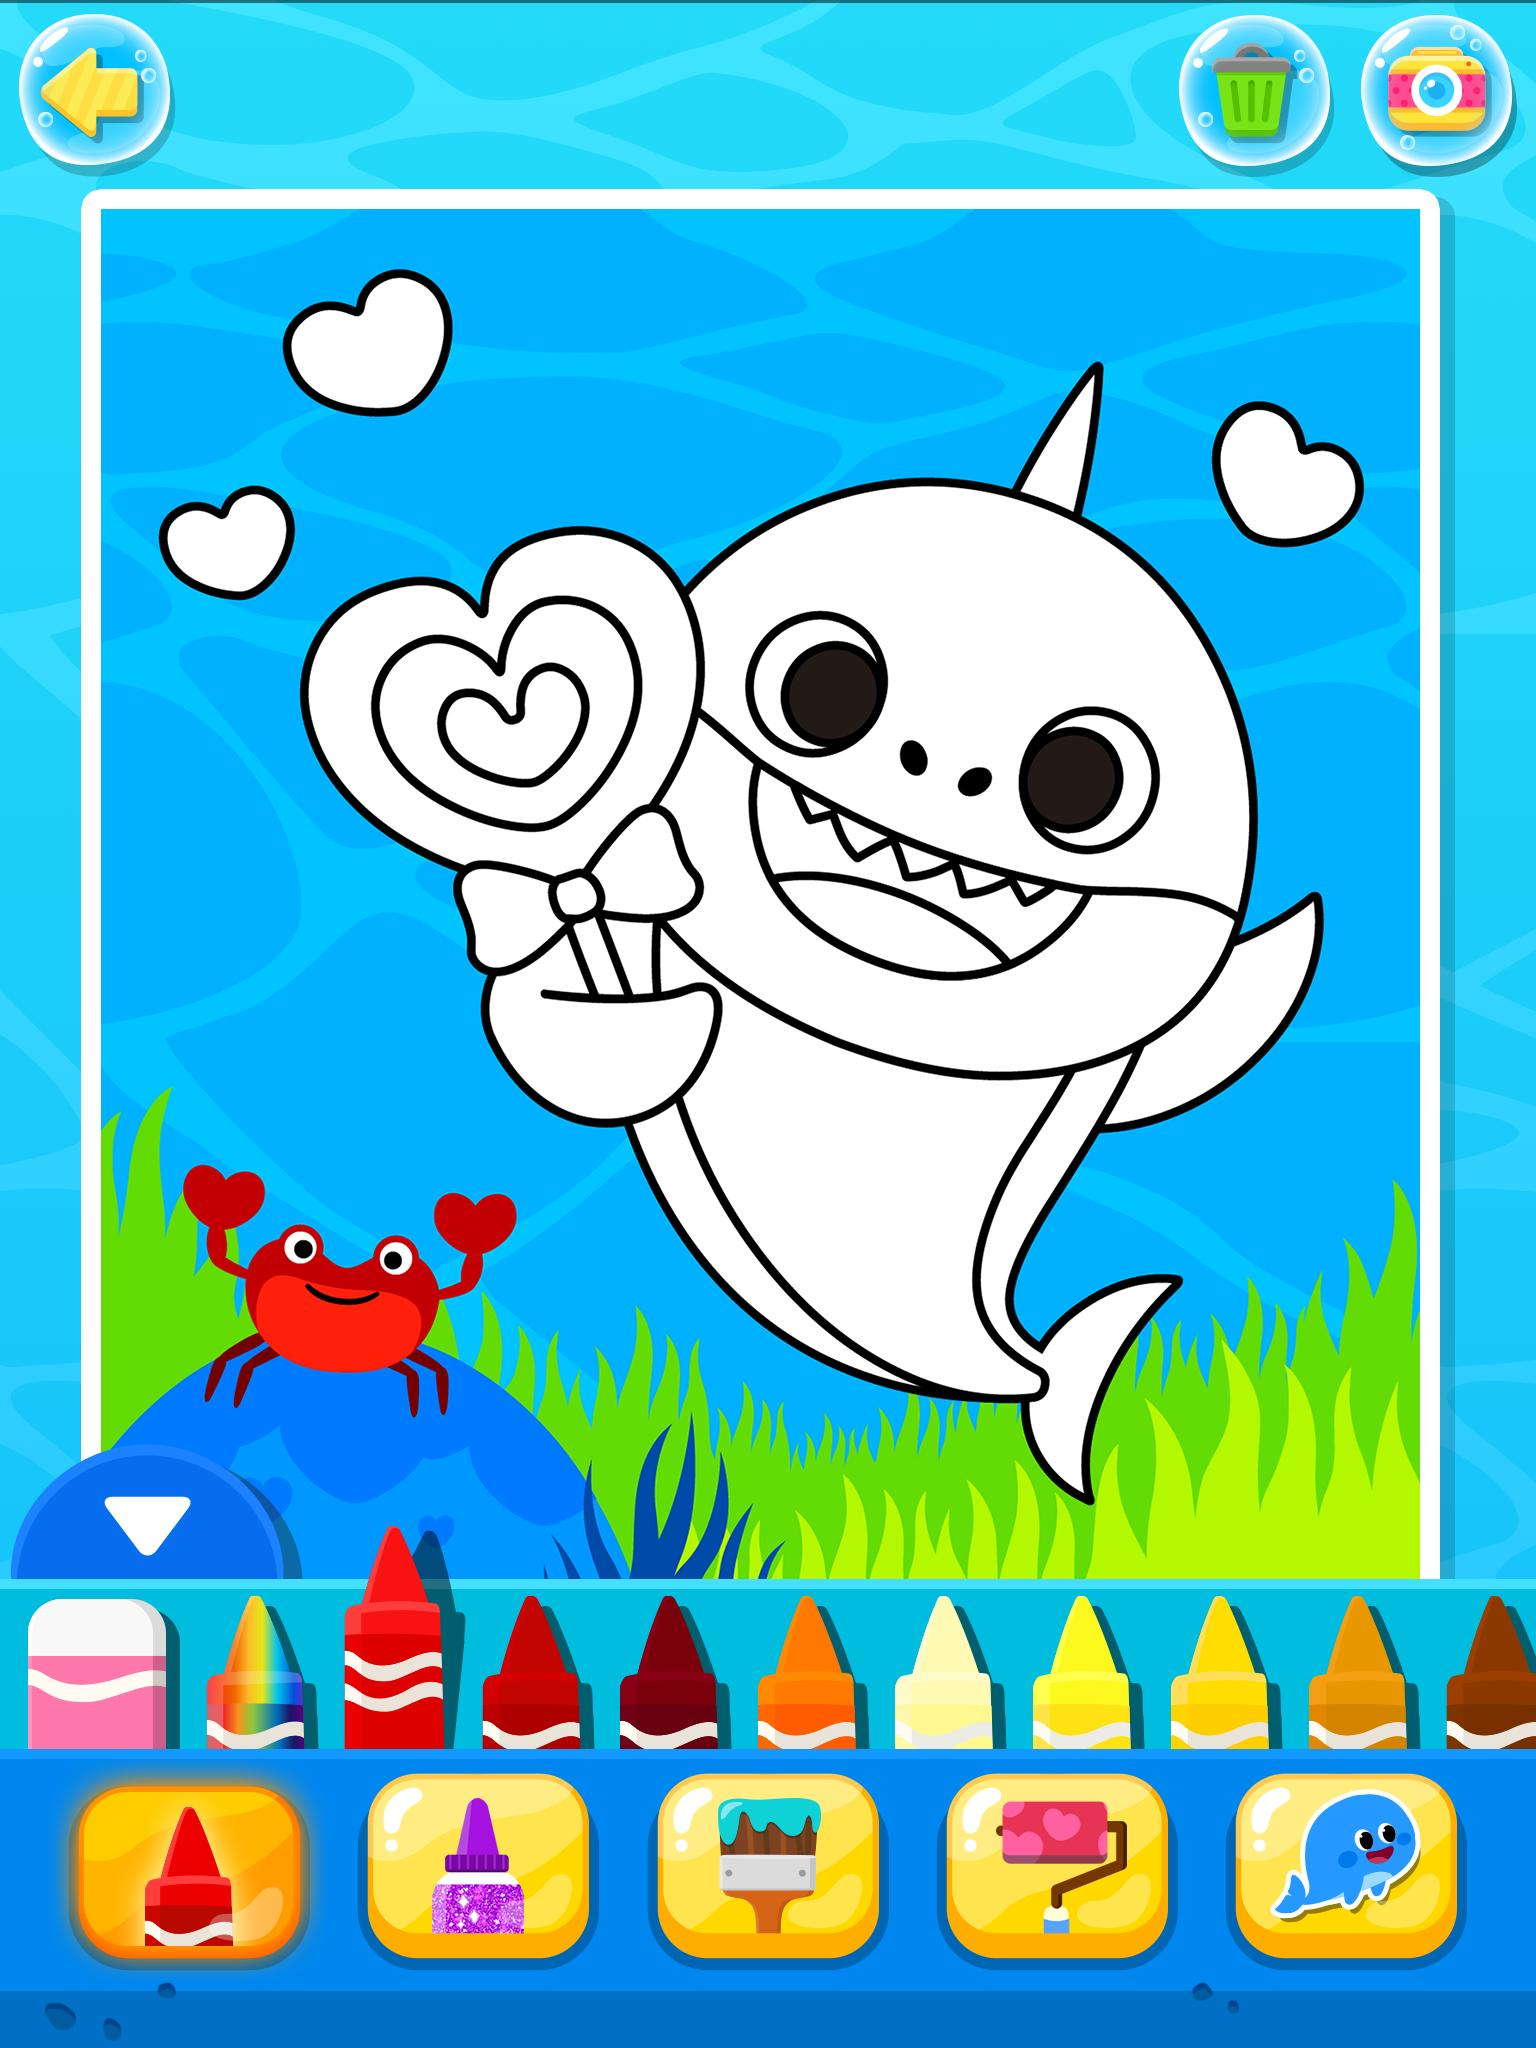 Pinkfong Baby Shark Coloring Book for Android - APK Download